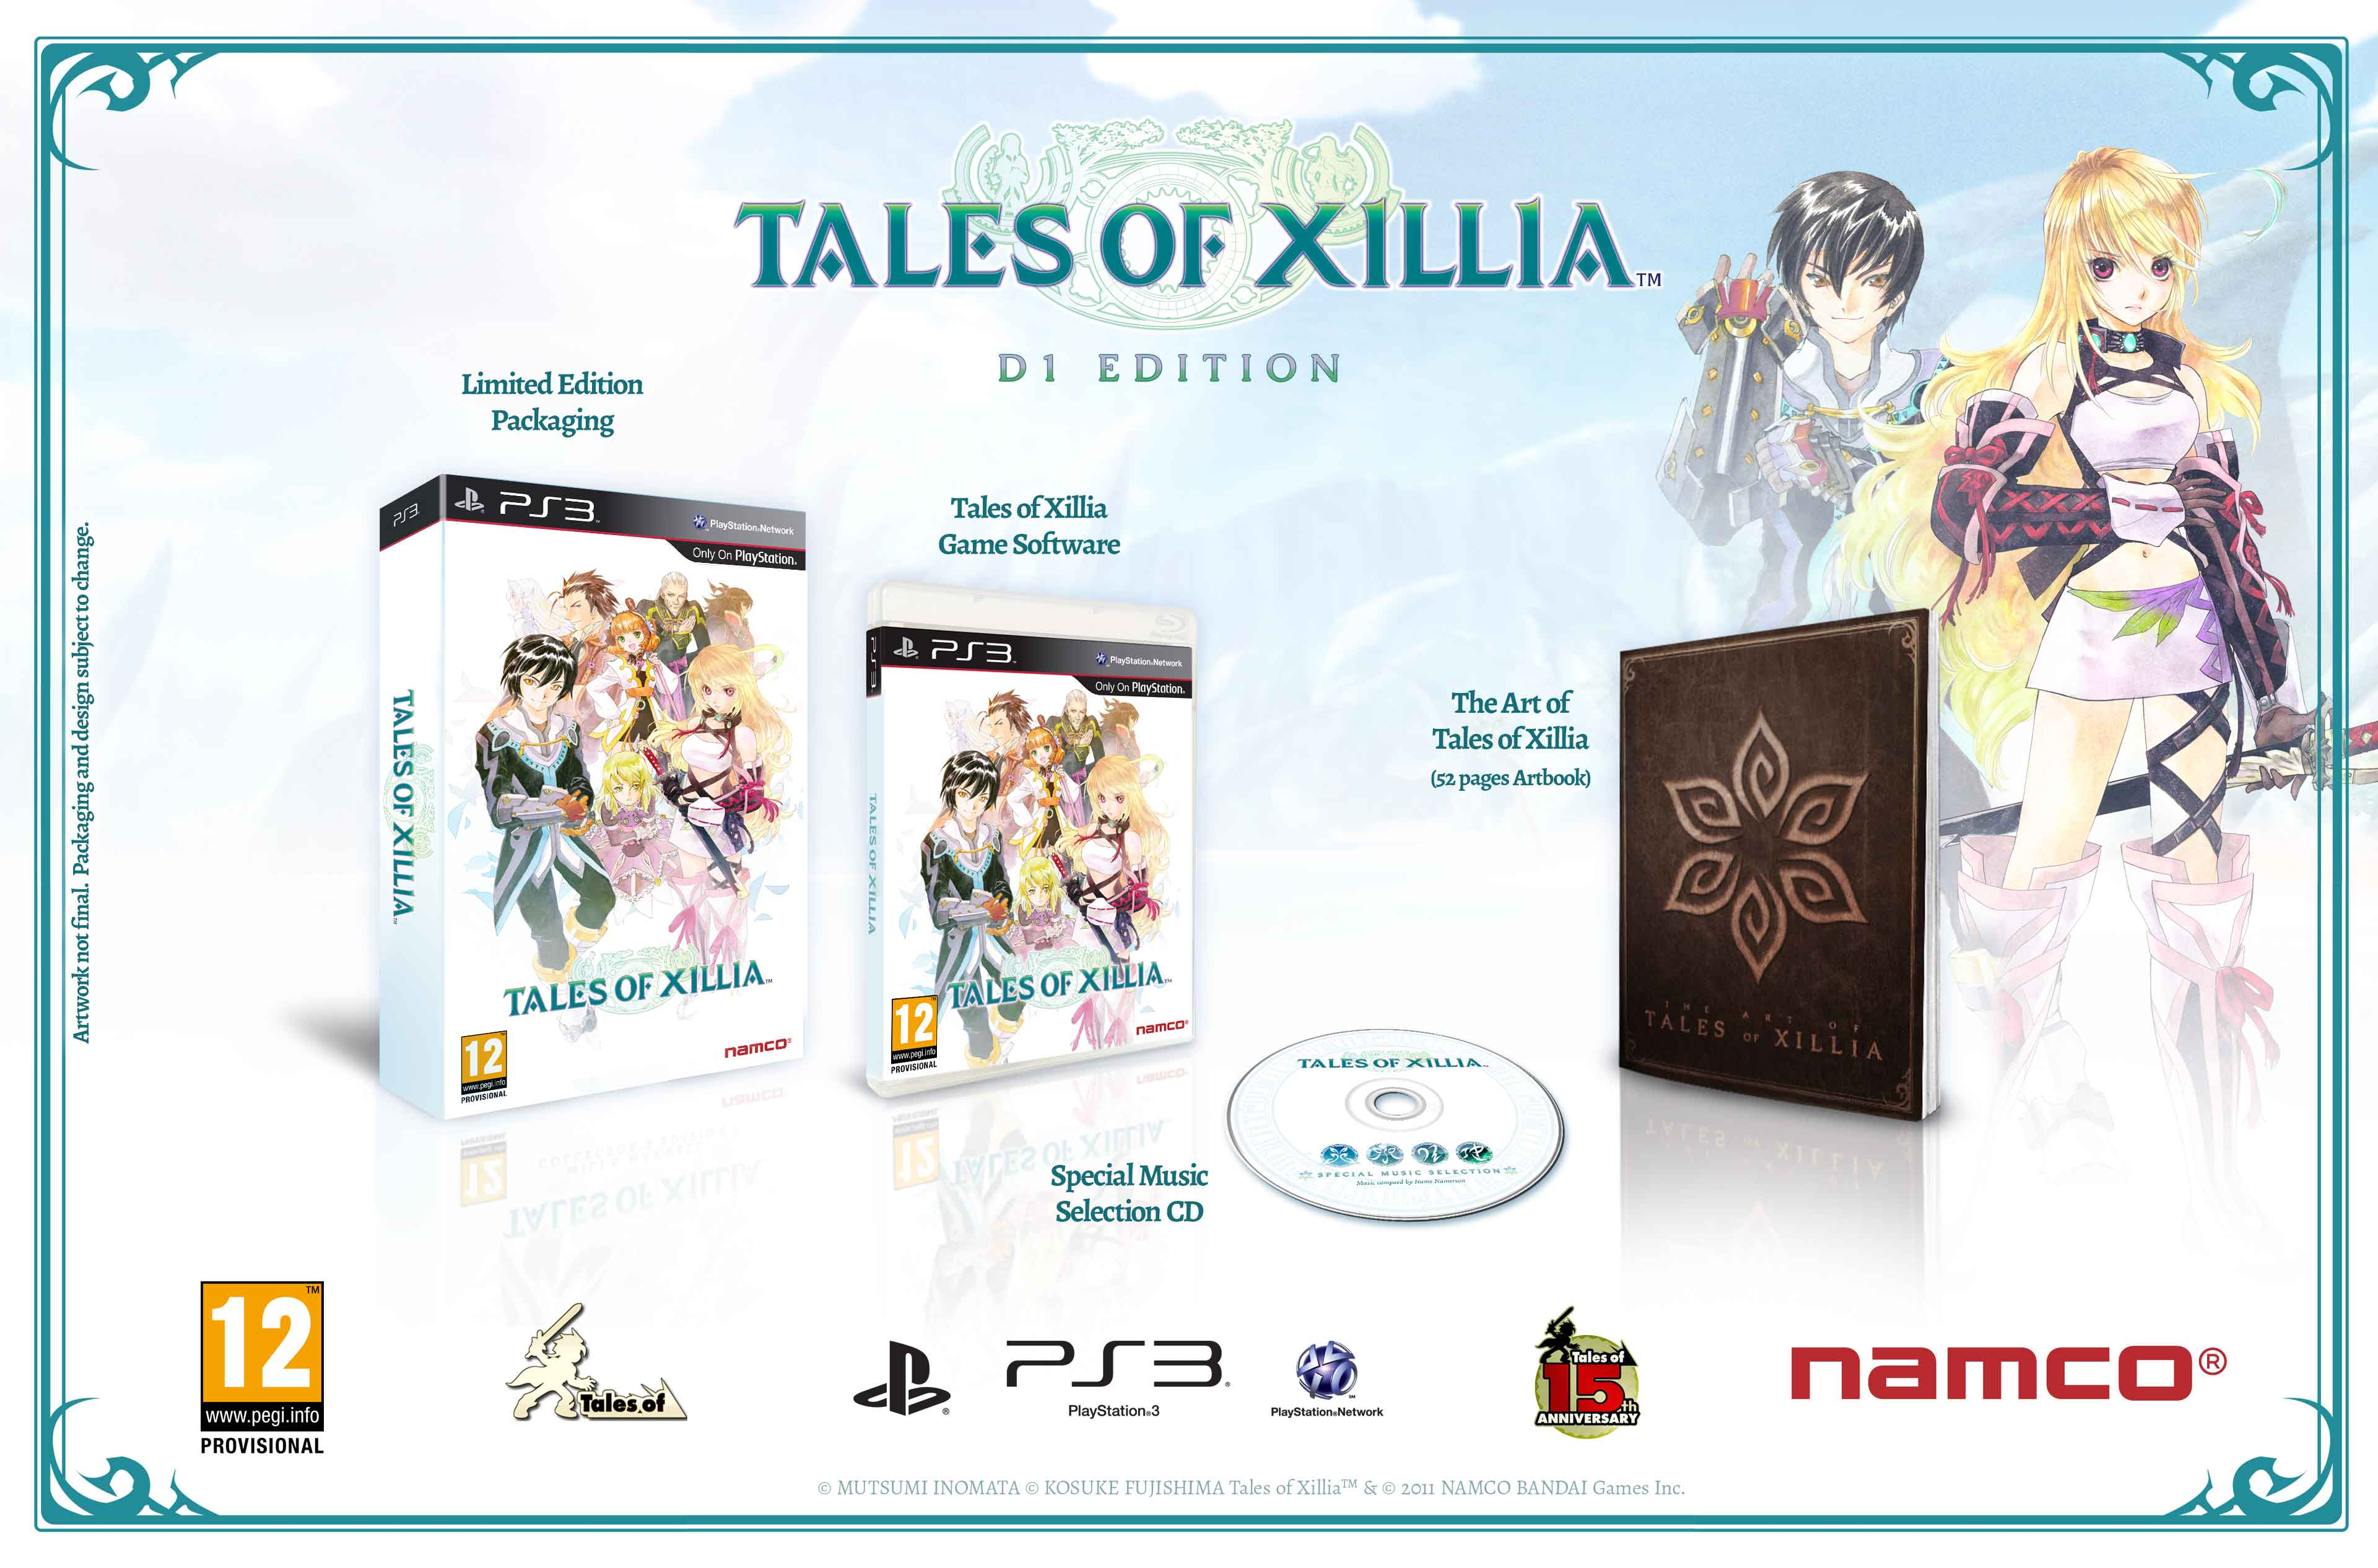 SGGAMINGINFO » Tales of Xillia gets a release date and a